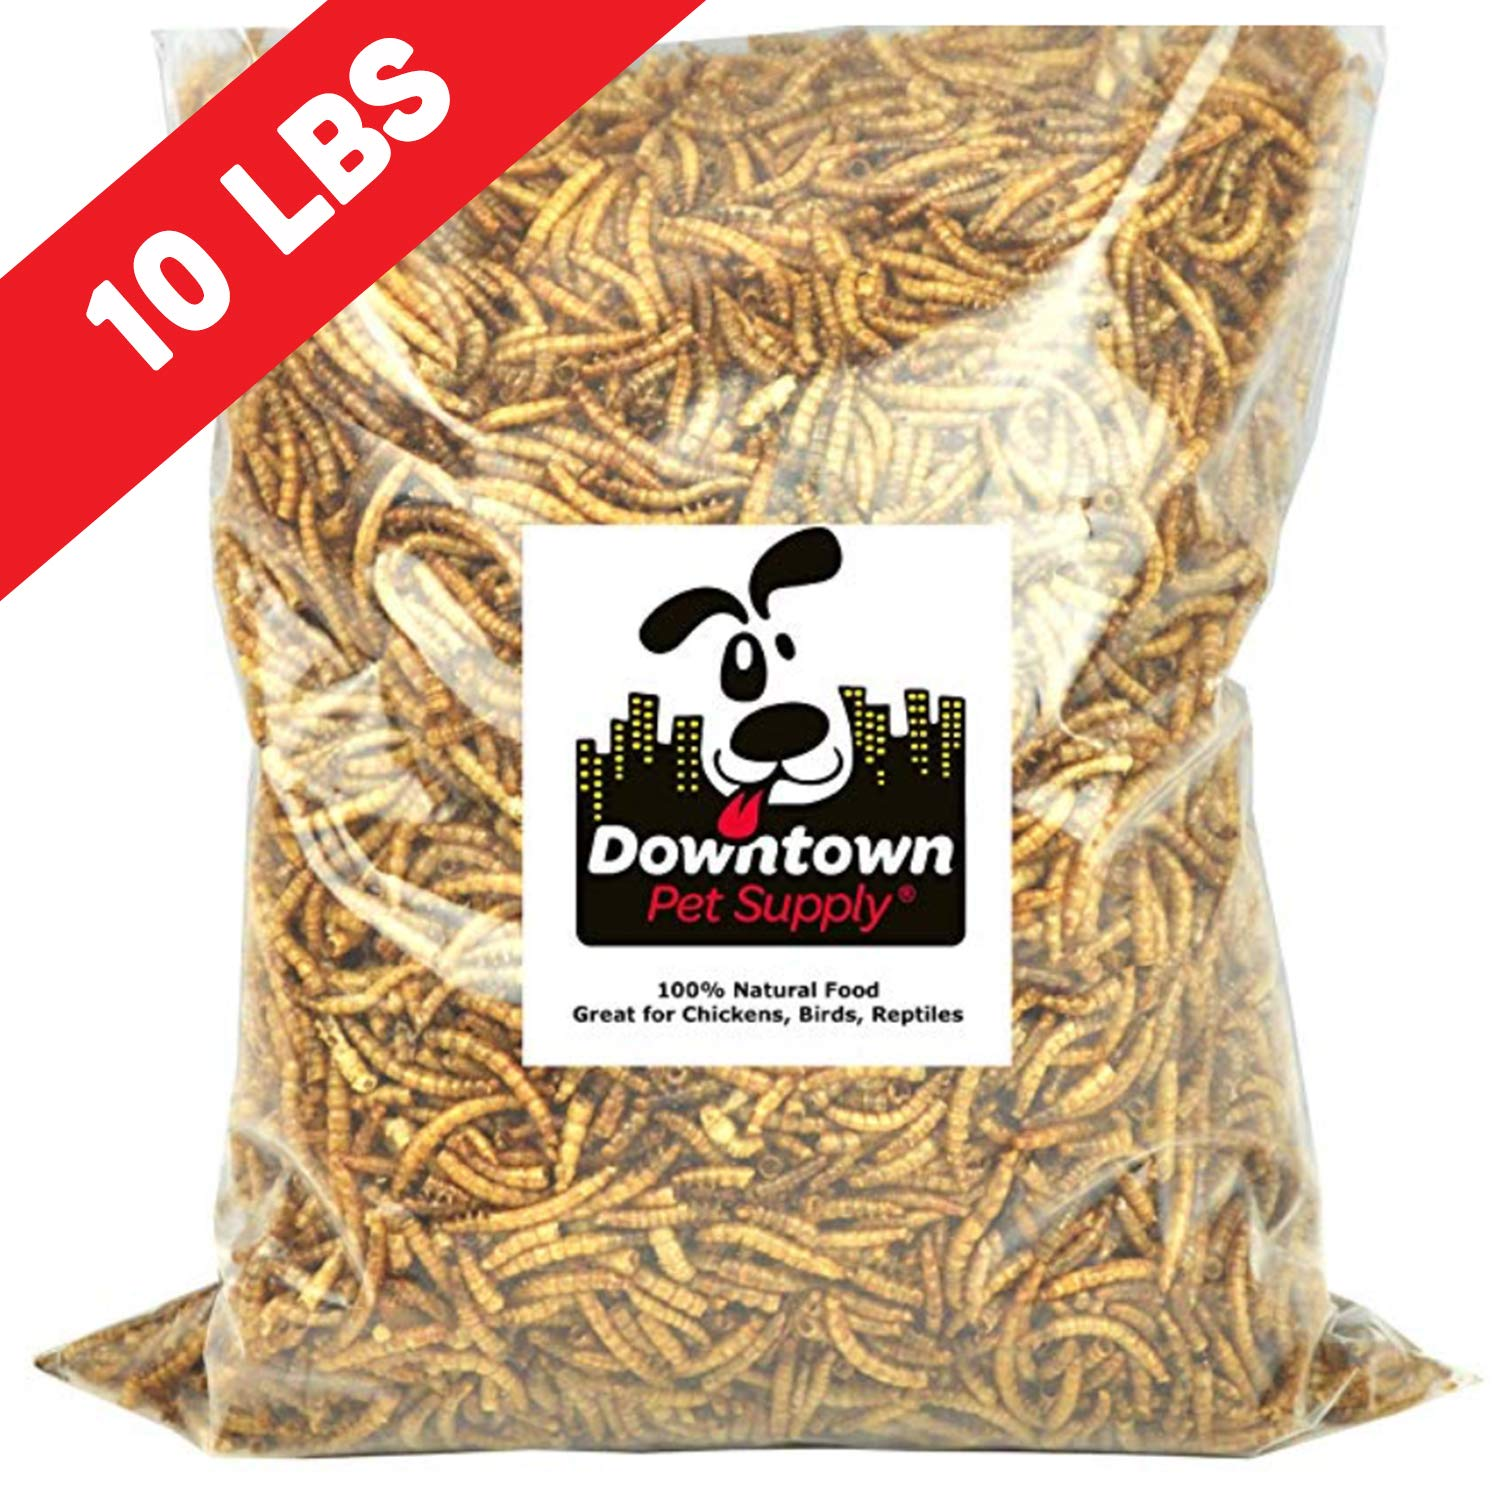 Downtown Pet Supply Dried Mealworms 100% Natural Treats for Wild Birds, Chickens, Reptiles, Fish, Turtles - Meal Worms Dried Food for Birds, Turkeys (10 LB) by Downtown Pet Supply